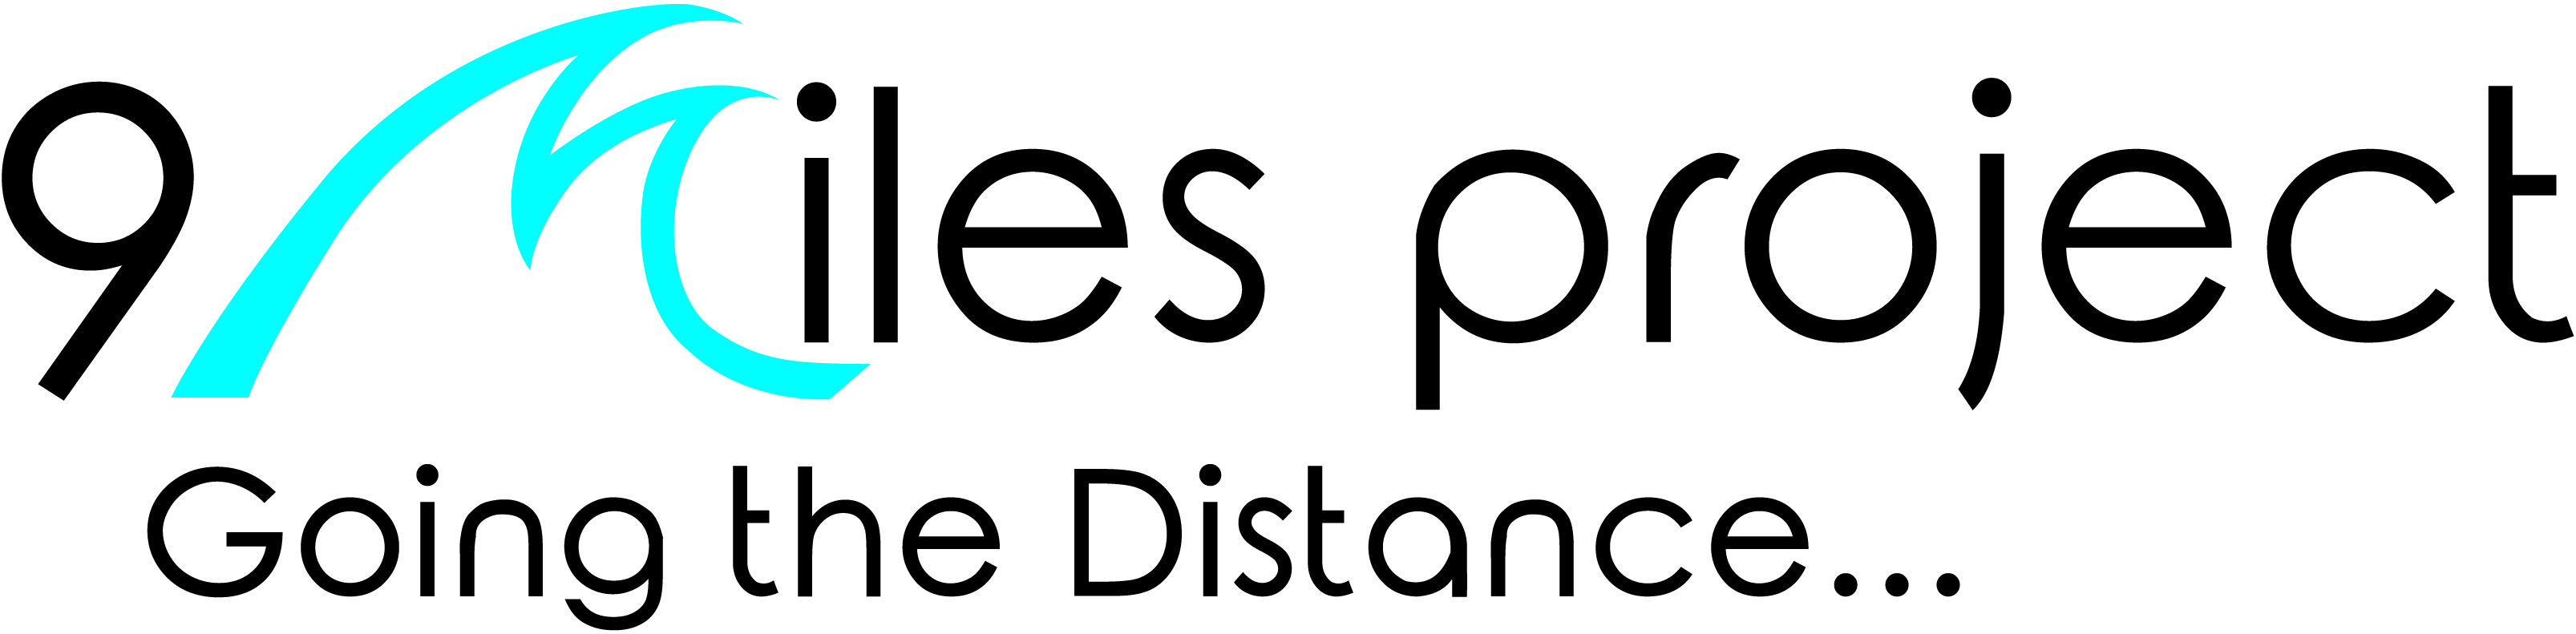 9MilesProject-logo-2019